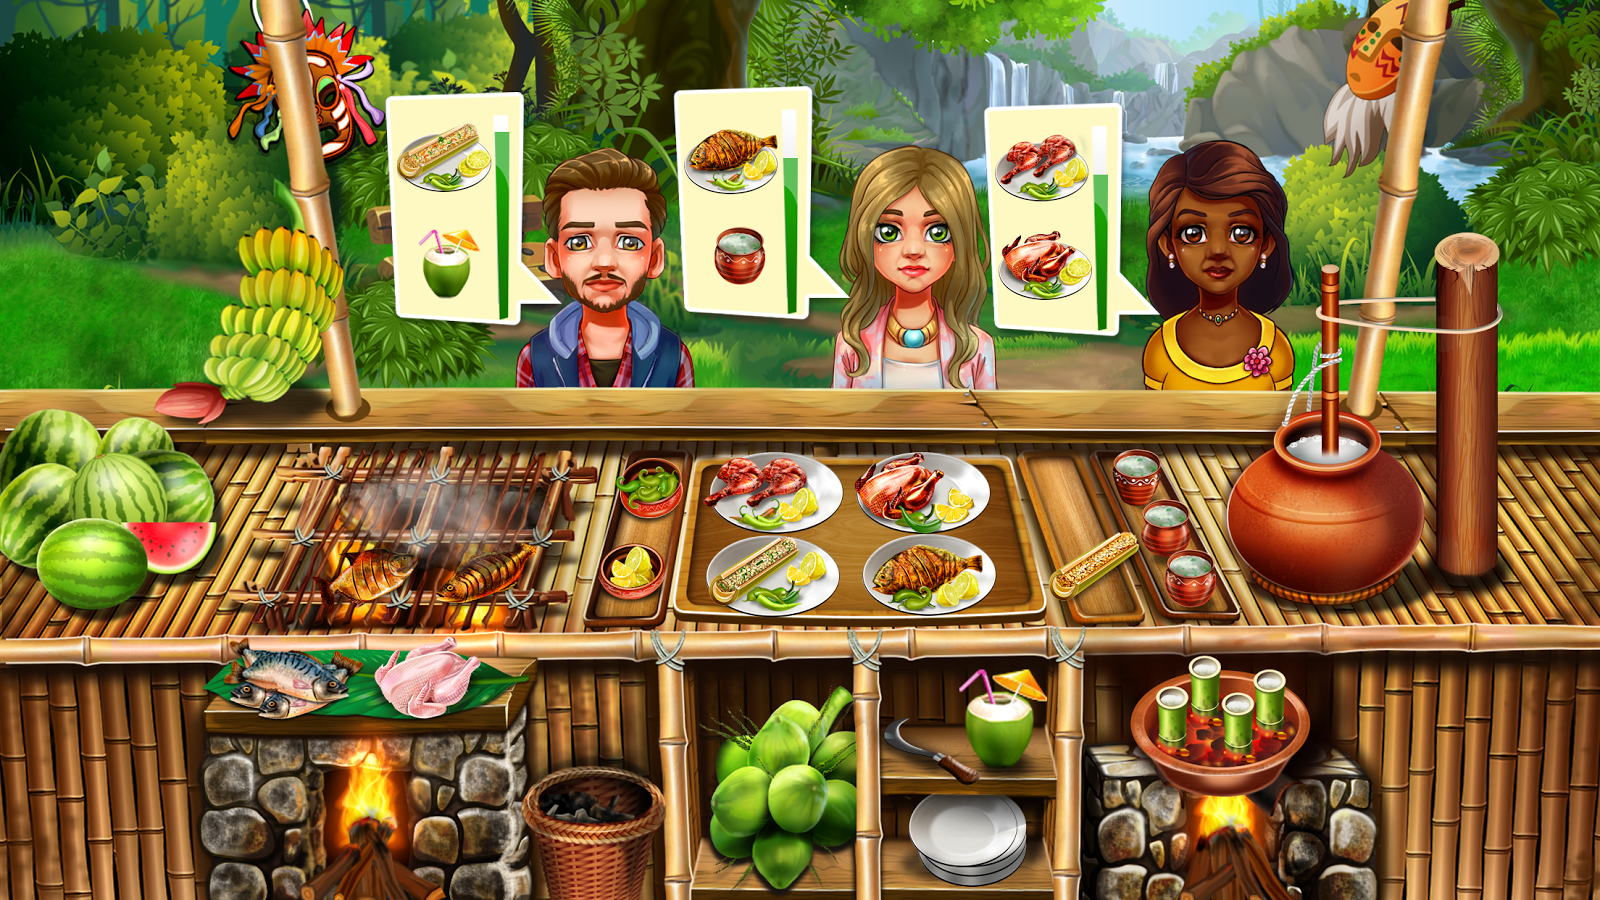 App shopper sport archery resort games - Cooking Fest Cooking Games Screenshot